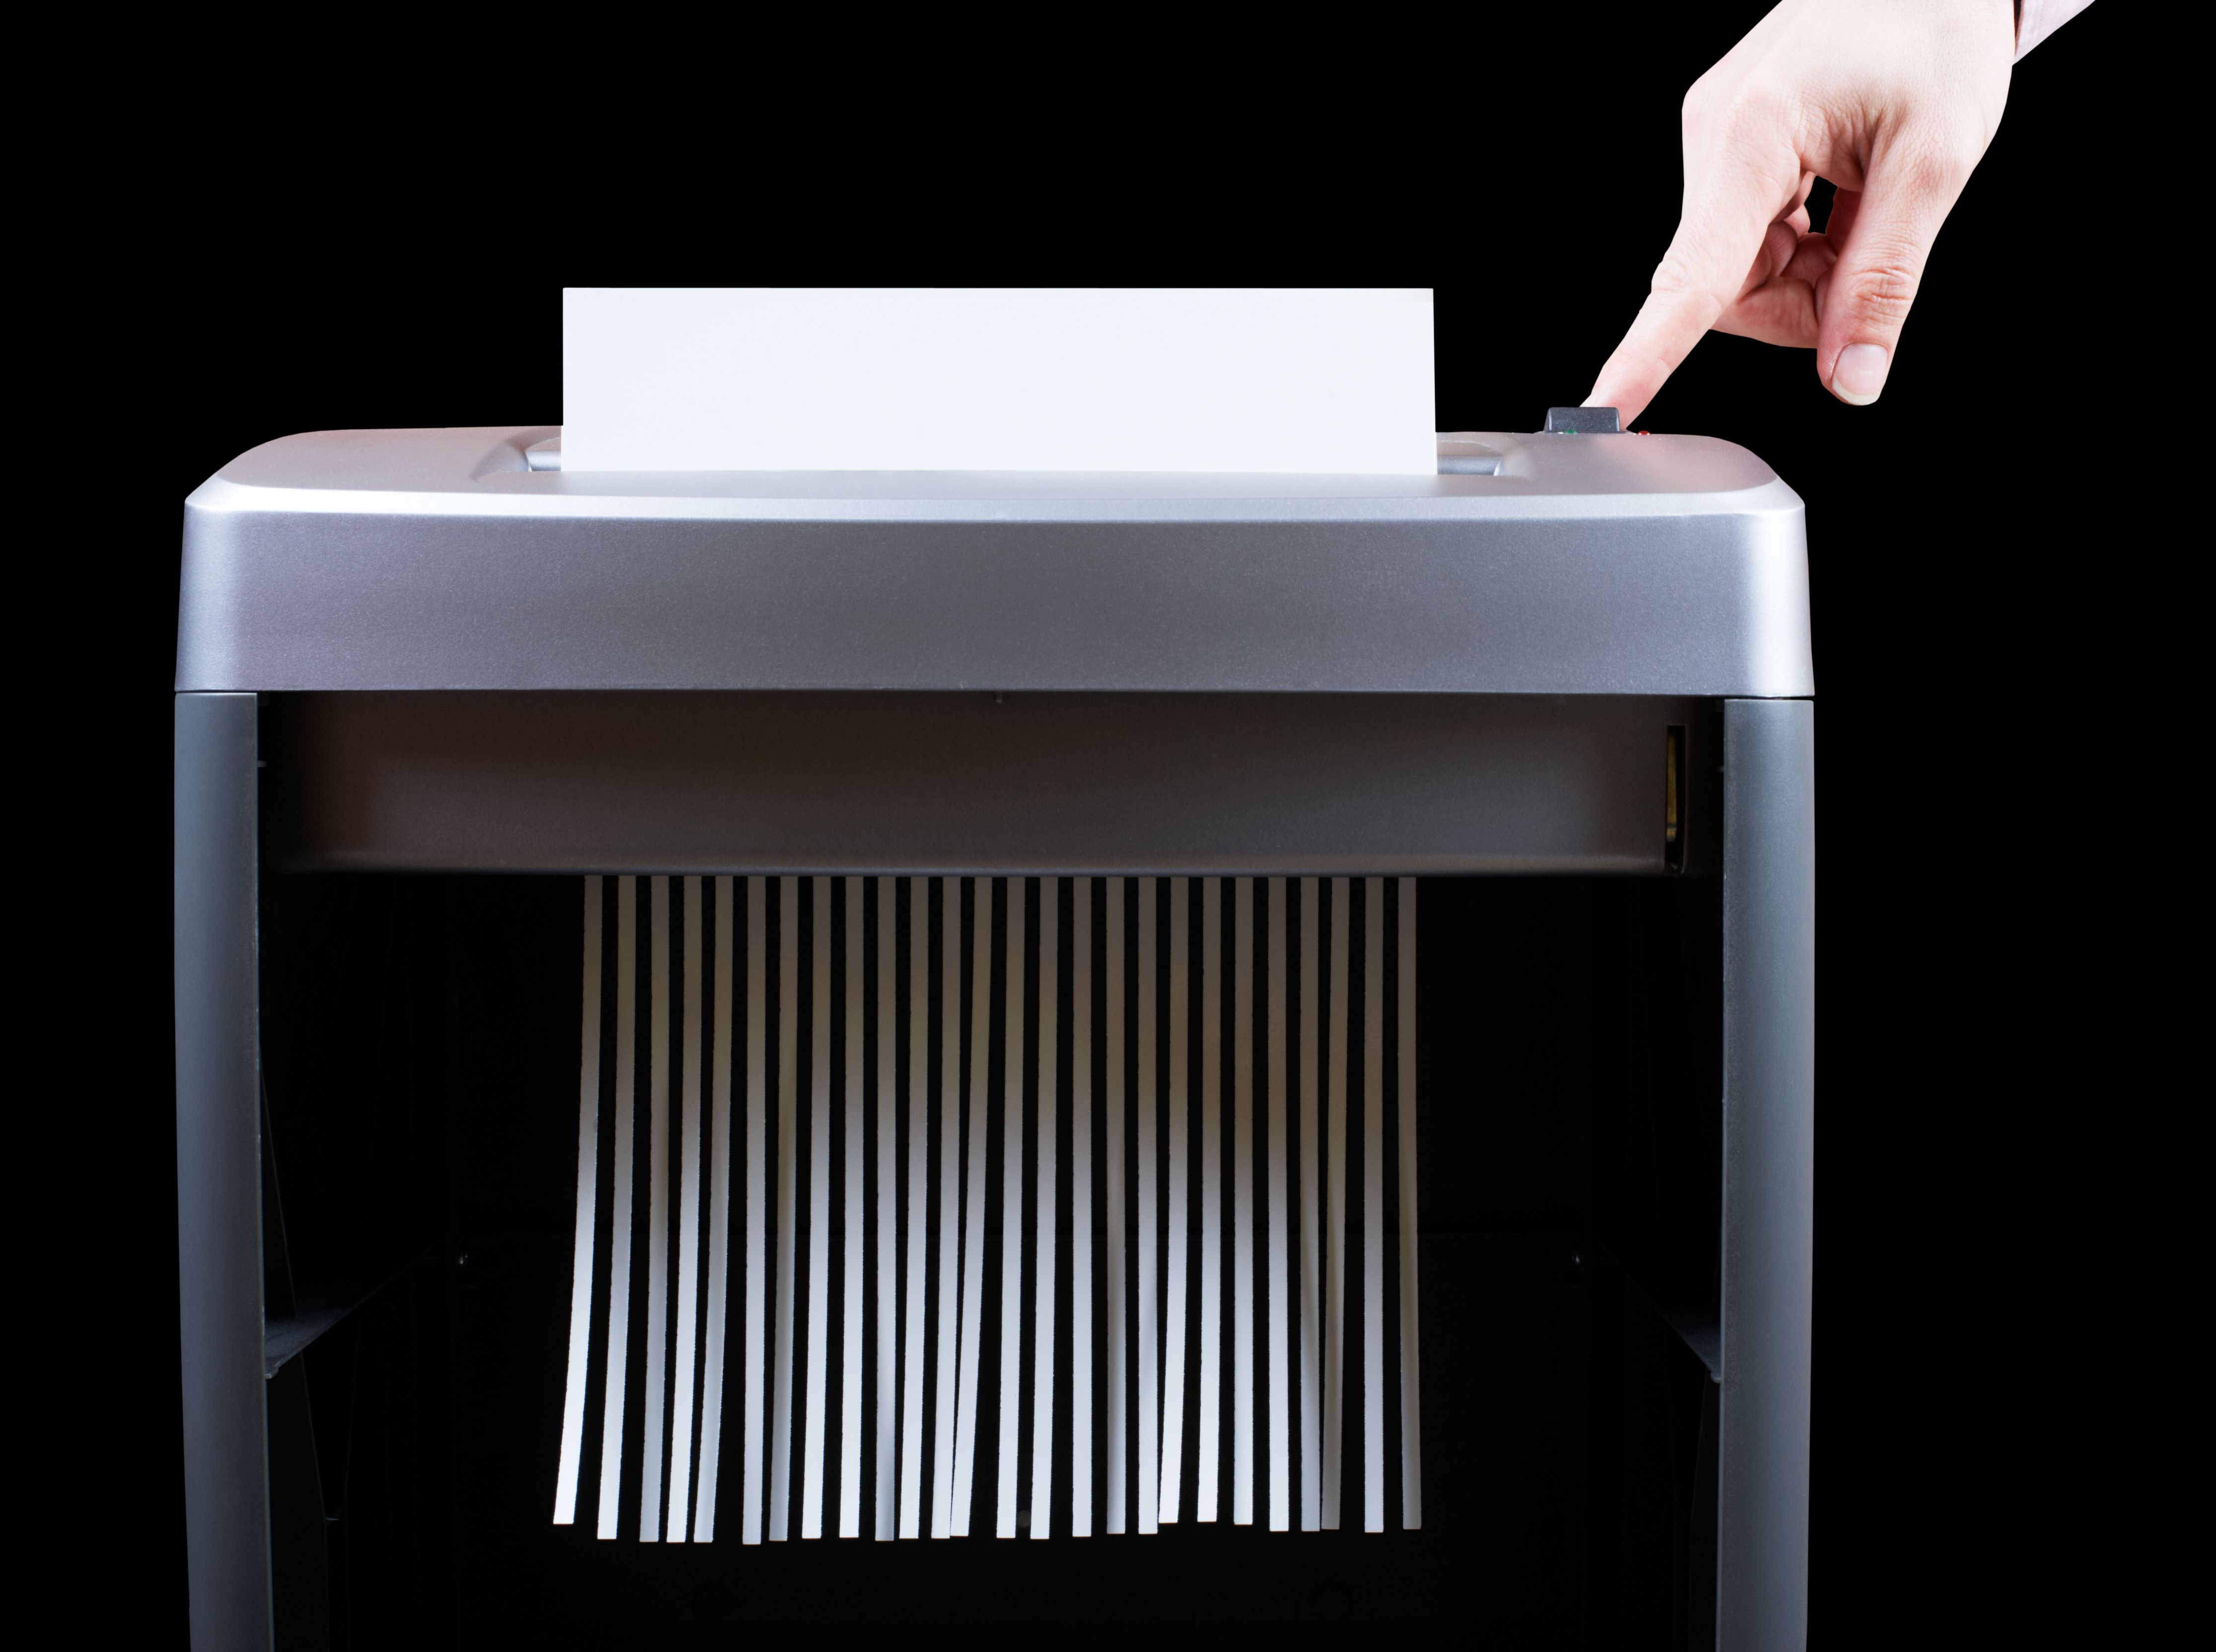 how to choose a personal paper shredder for home office - Best Paper Shredder For The Money